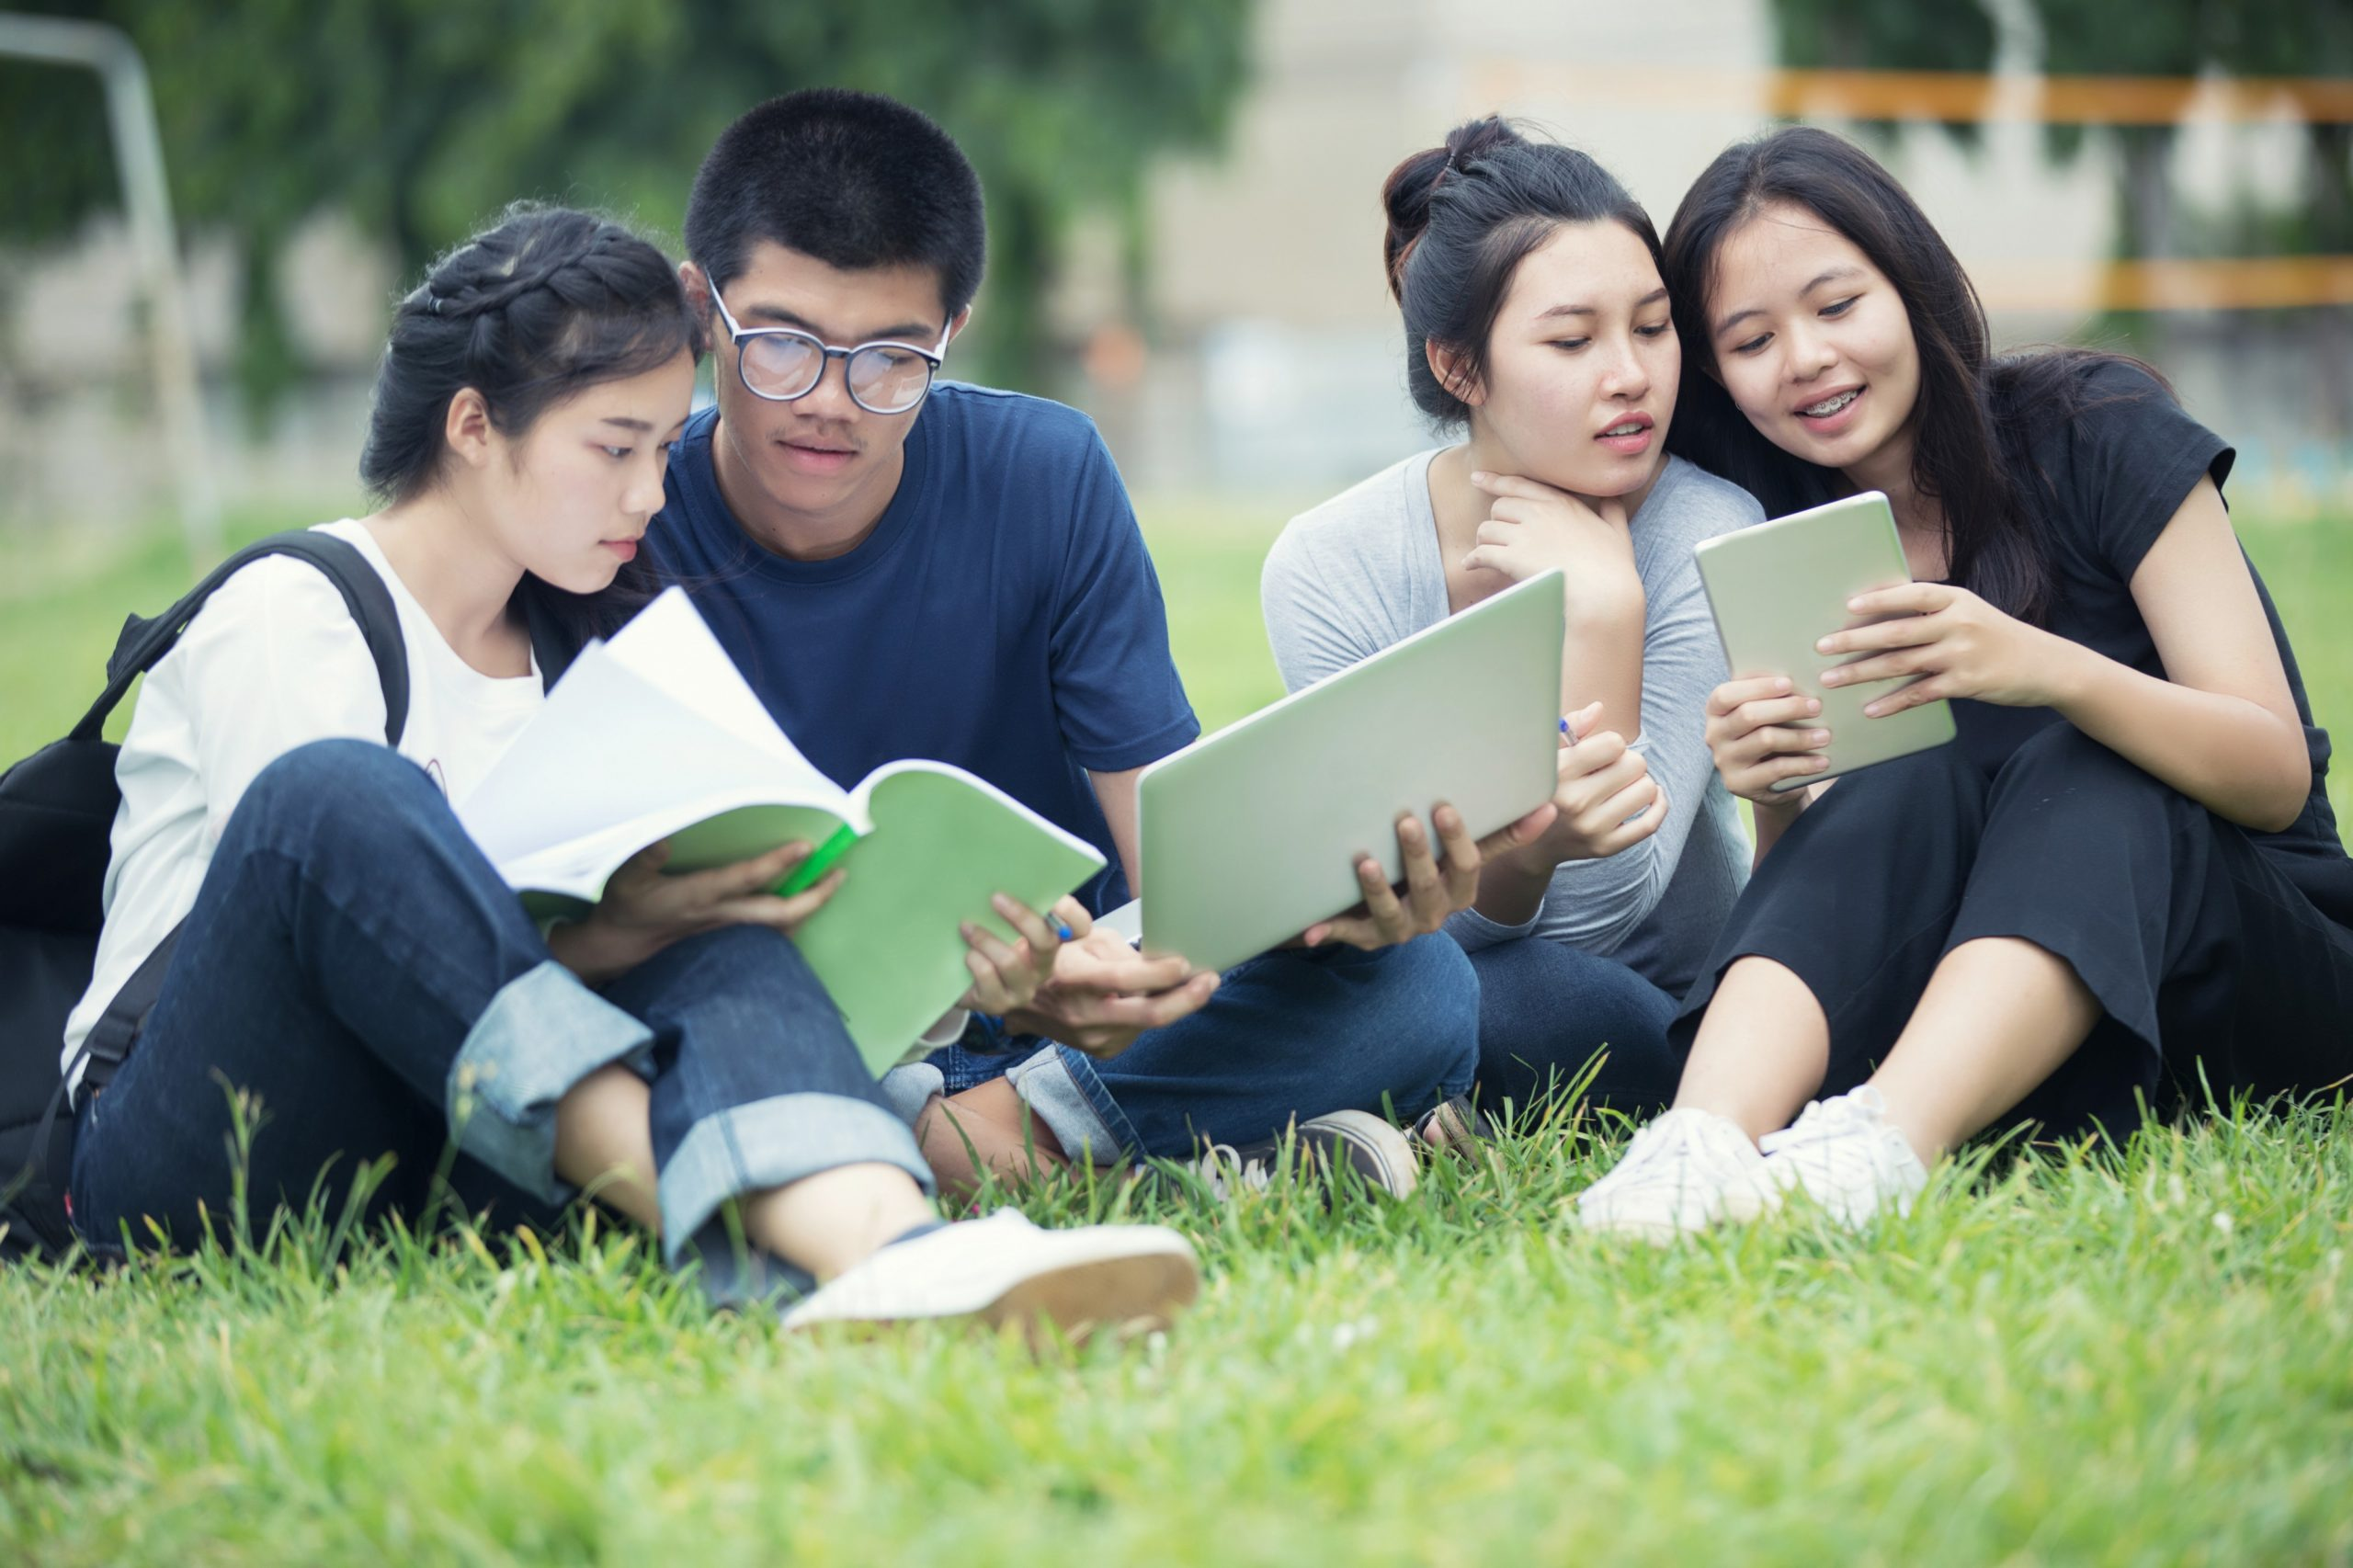 China Plans to Achieve Depression Awareness Among 85% of Students by 2022 — But How?